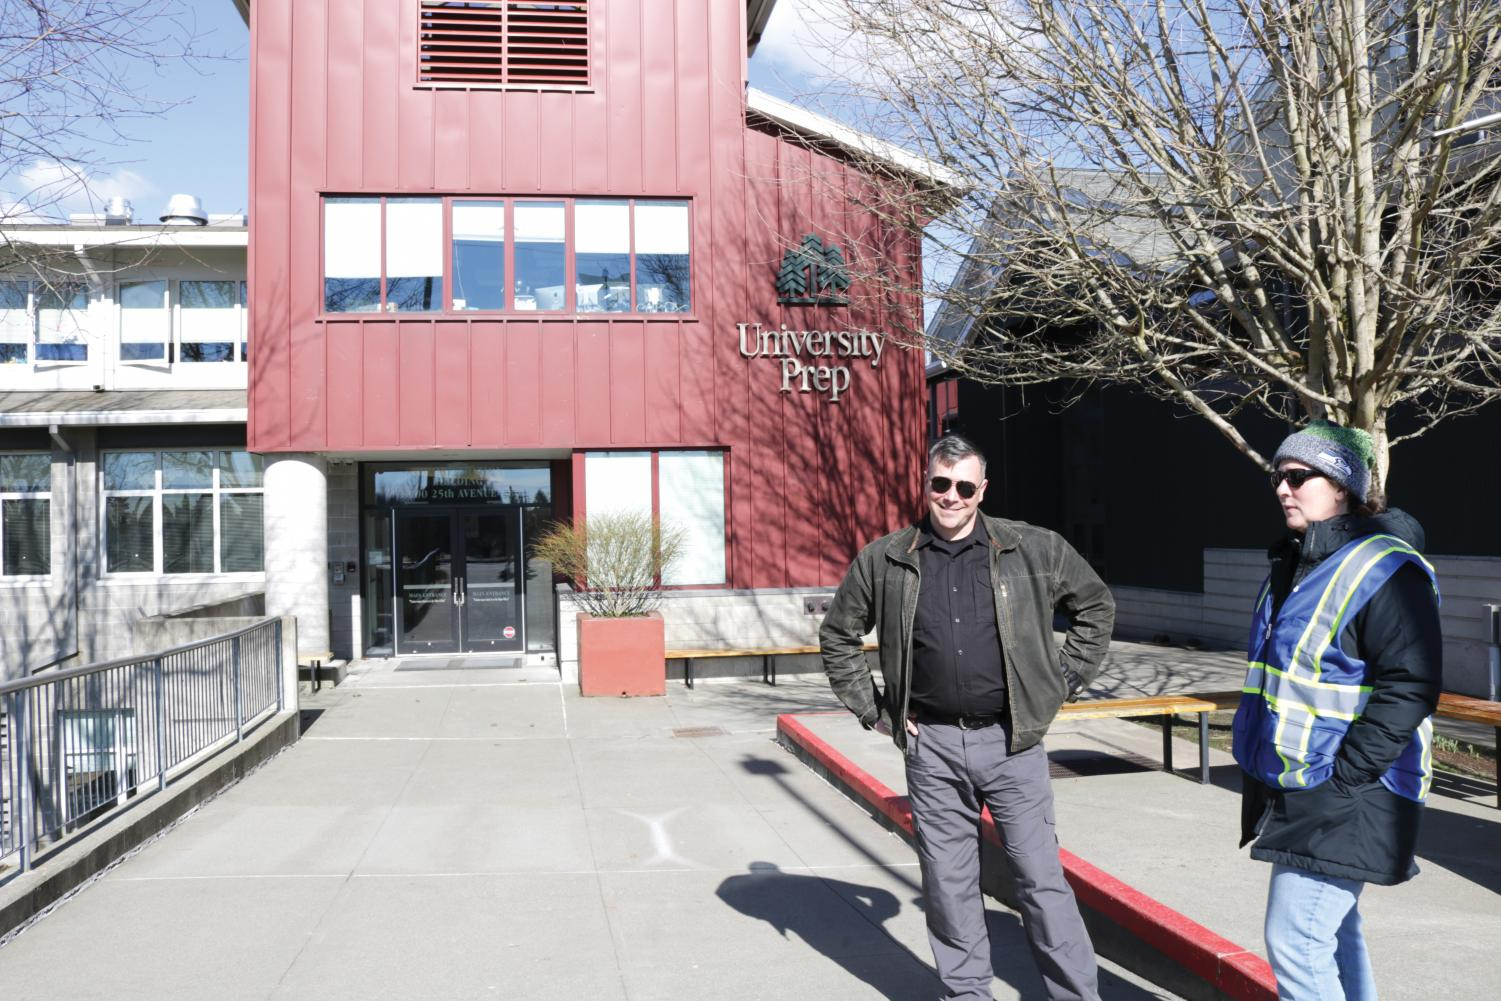 UPrep's new security guard works to asses possible risks and take steps to prevent any threats that may come to the school.